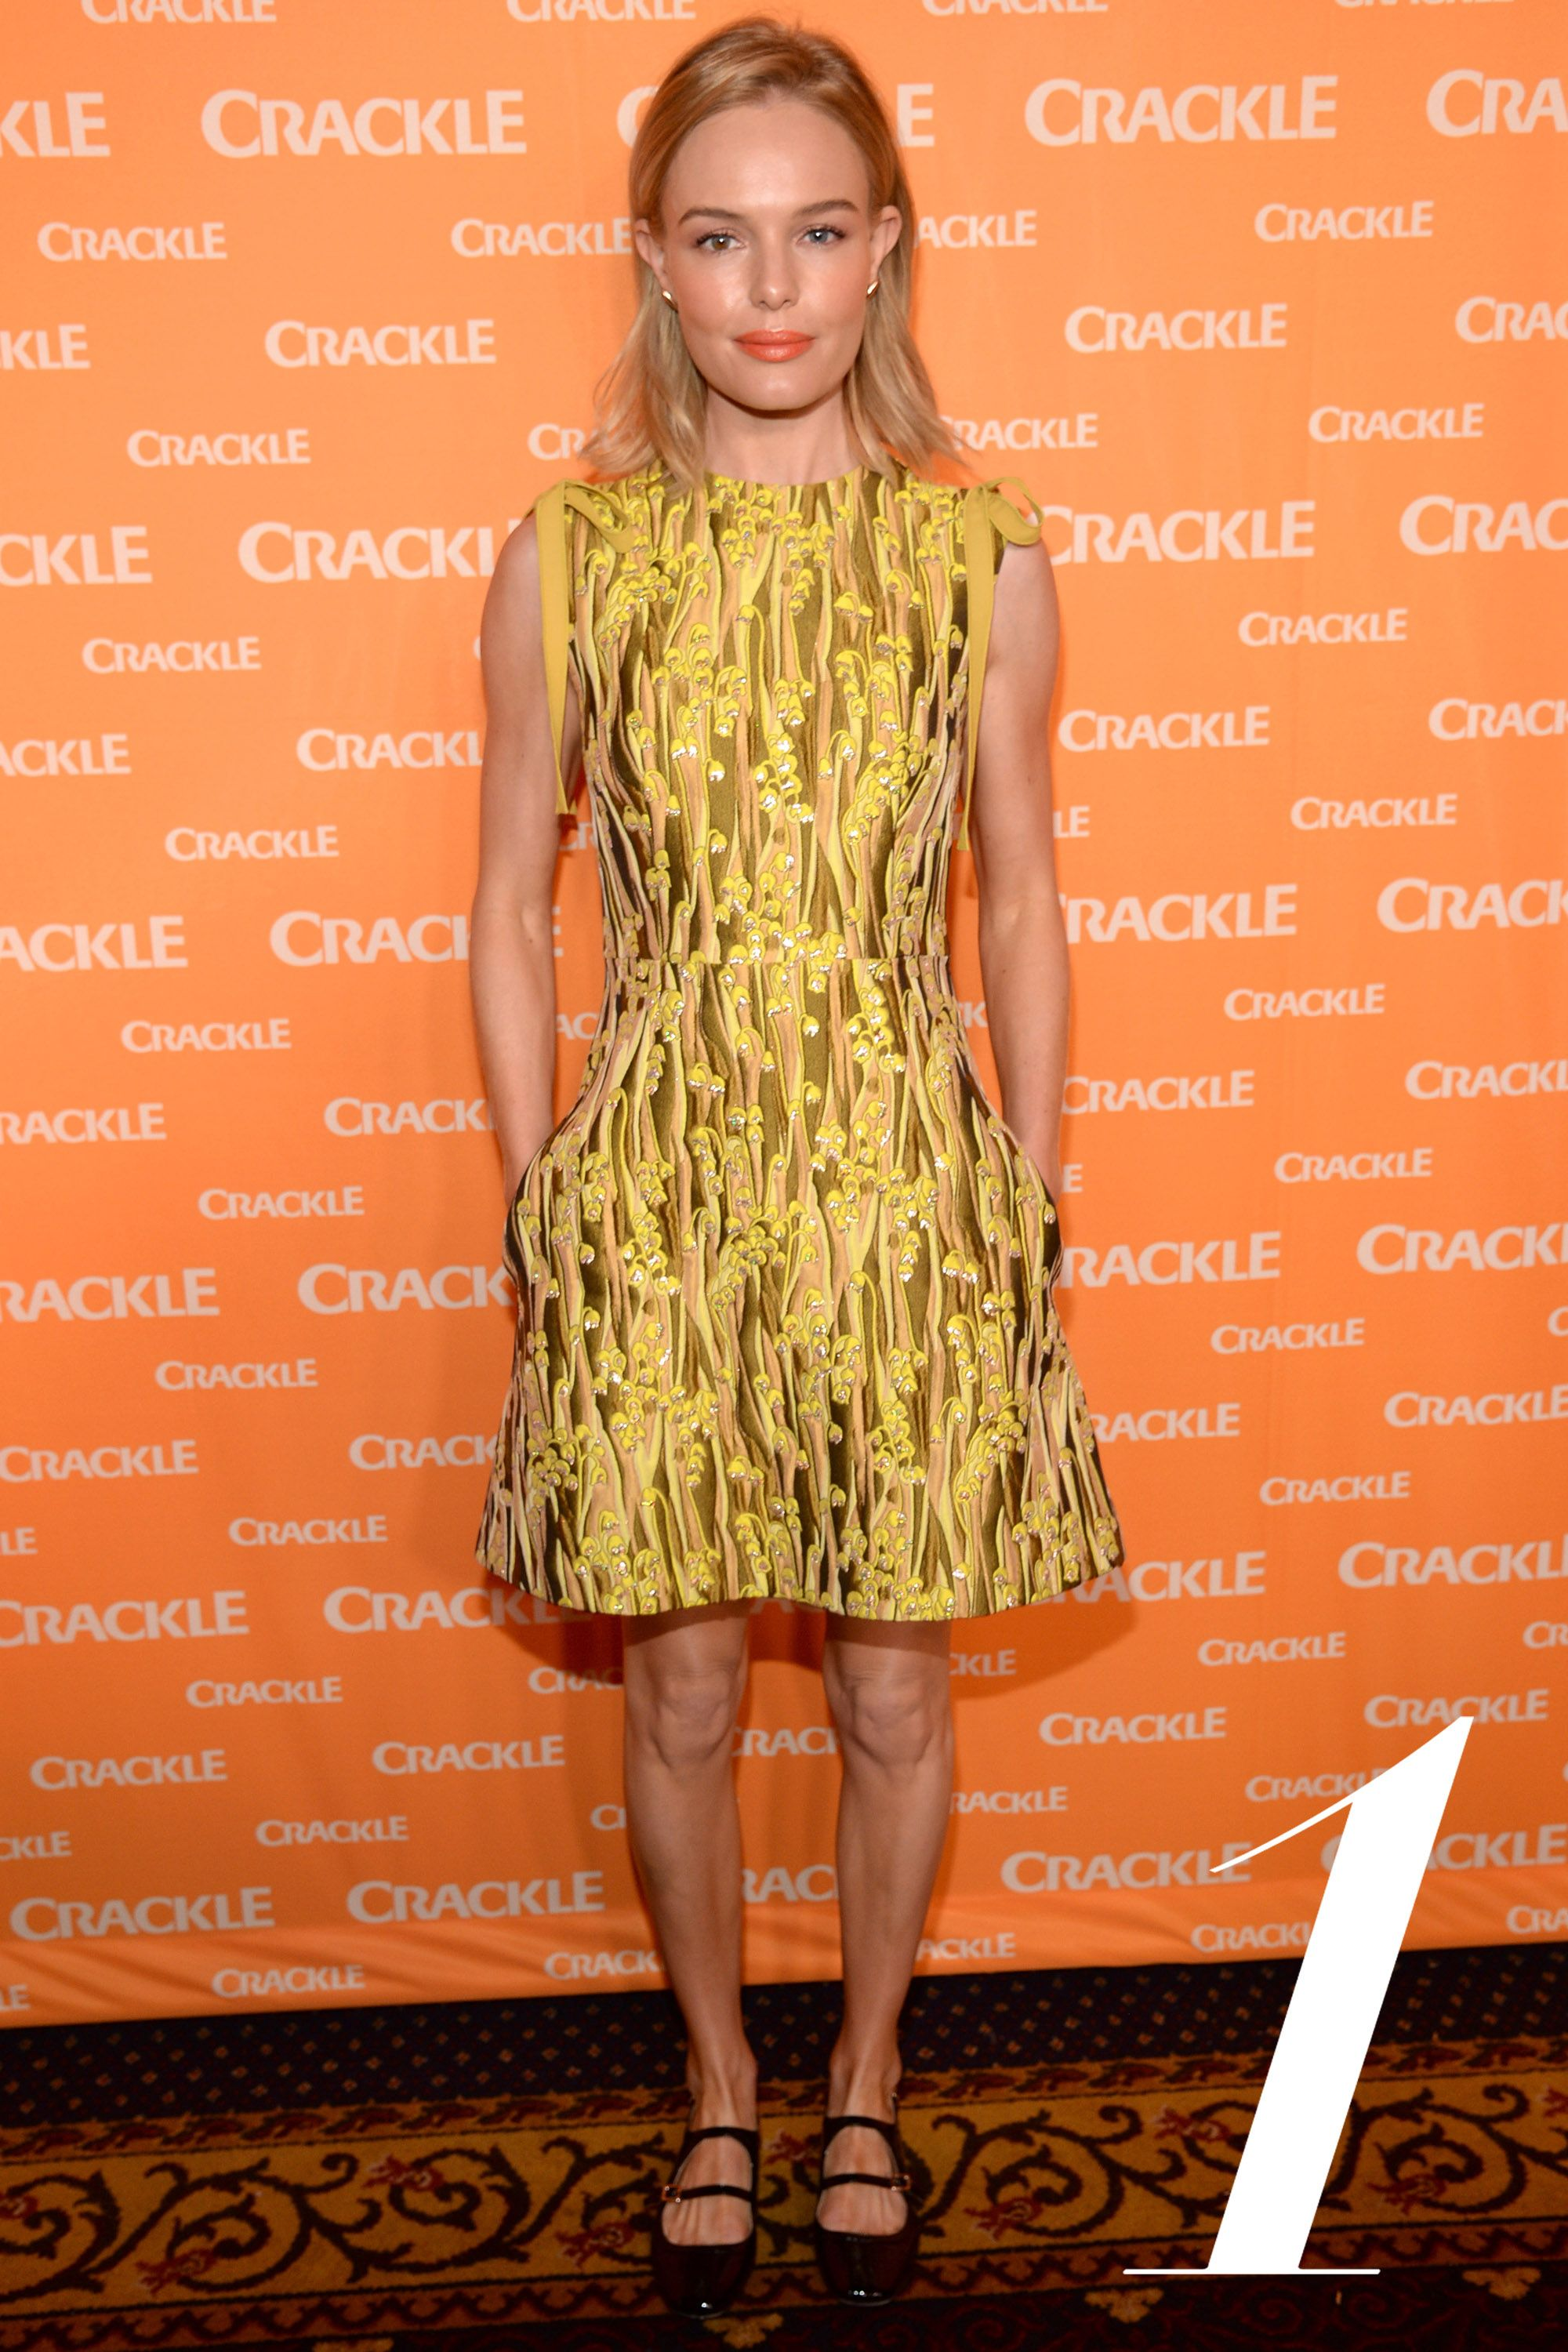 NEW YORK, NY - APRIL 14:  (Exclusive Coverage)  Kate Bosworth attends the 2015 Crackle Upfront at Hudson Theatre on April 14, 2015 in New York City.  (Photo by Kevin Mazur/Getty Images for Crackle)